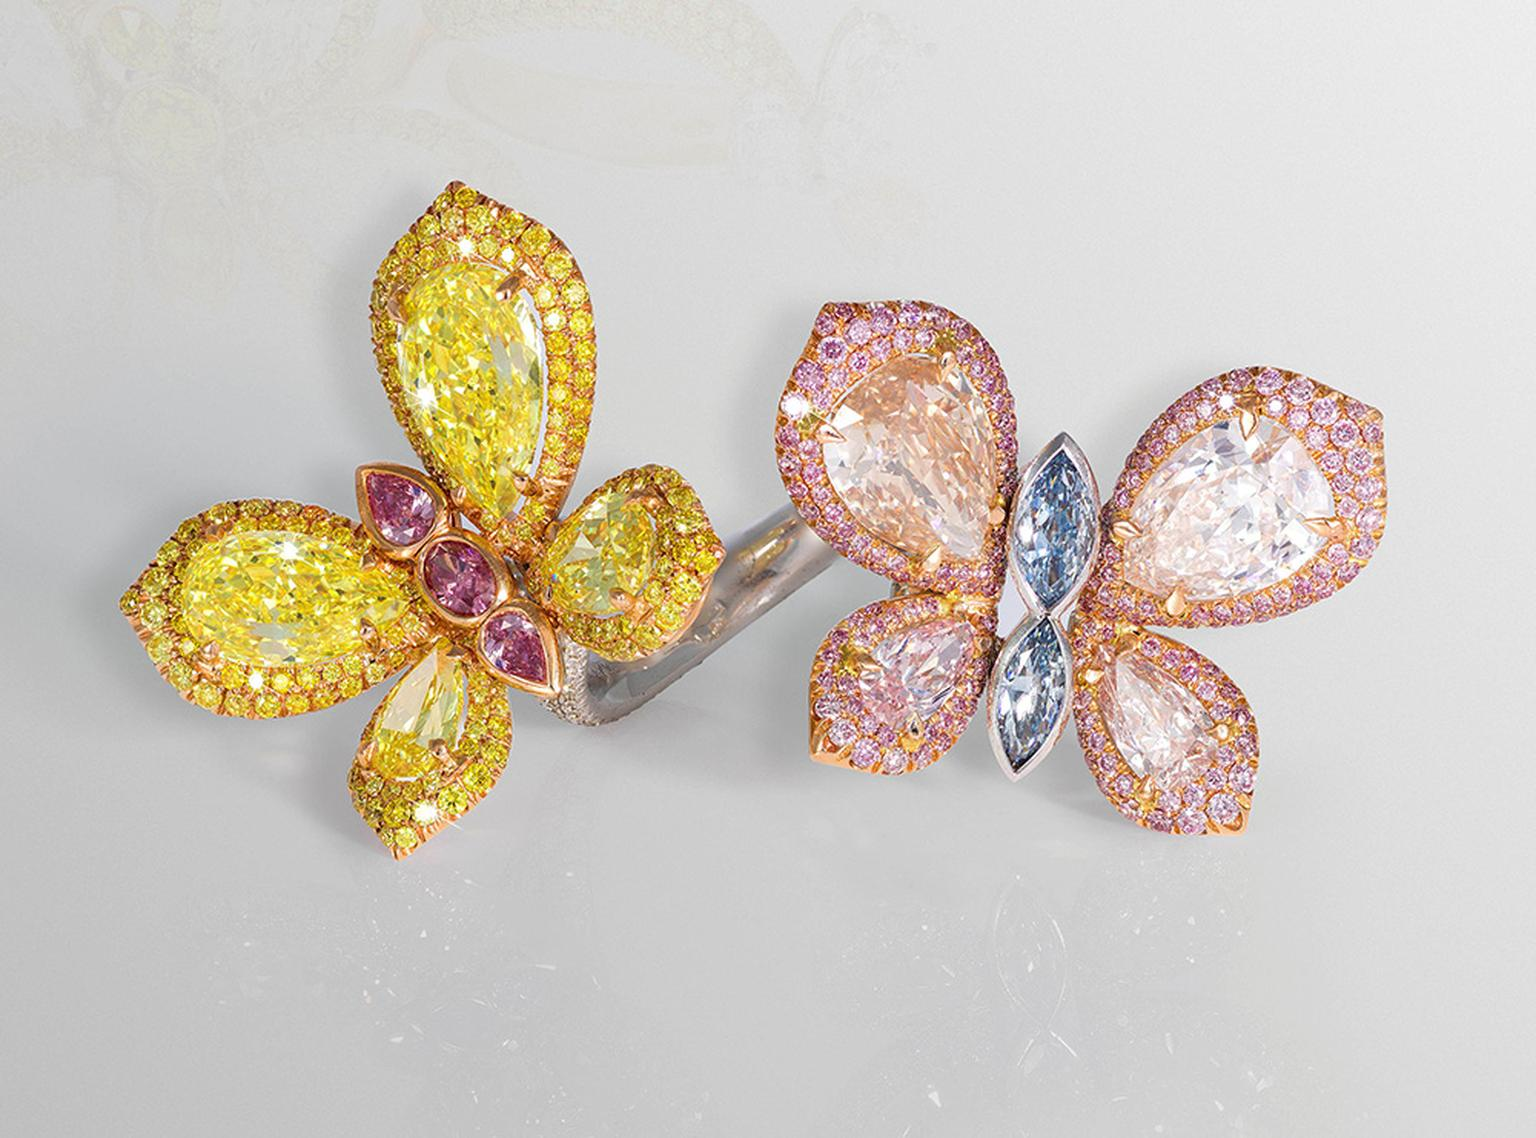 David Morris Butterfly ring, set with white, blue, pink and yellow diamonds, from the Butterfly and Palm Collection